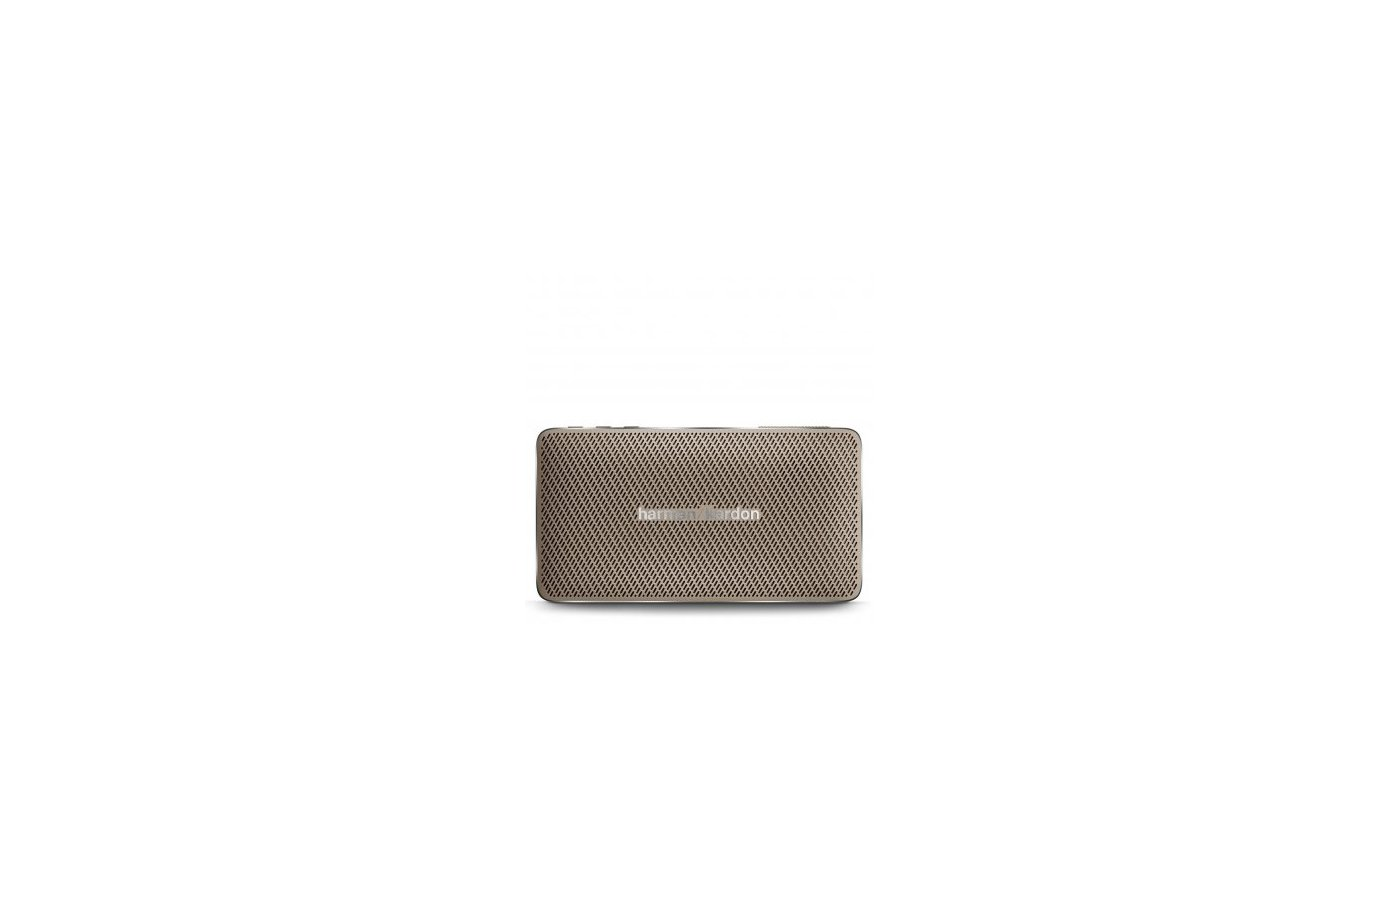 Колонка Harman Kardon Esquire Mini коричневая